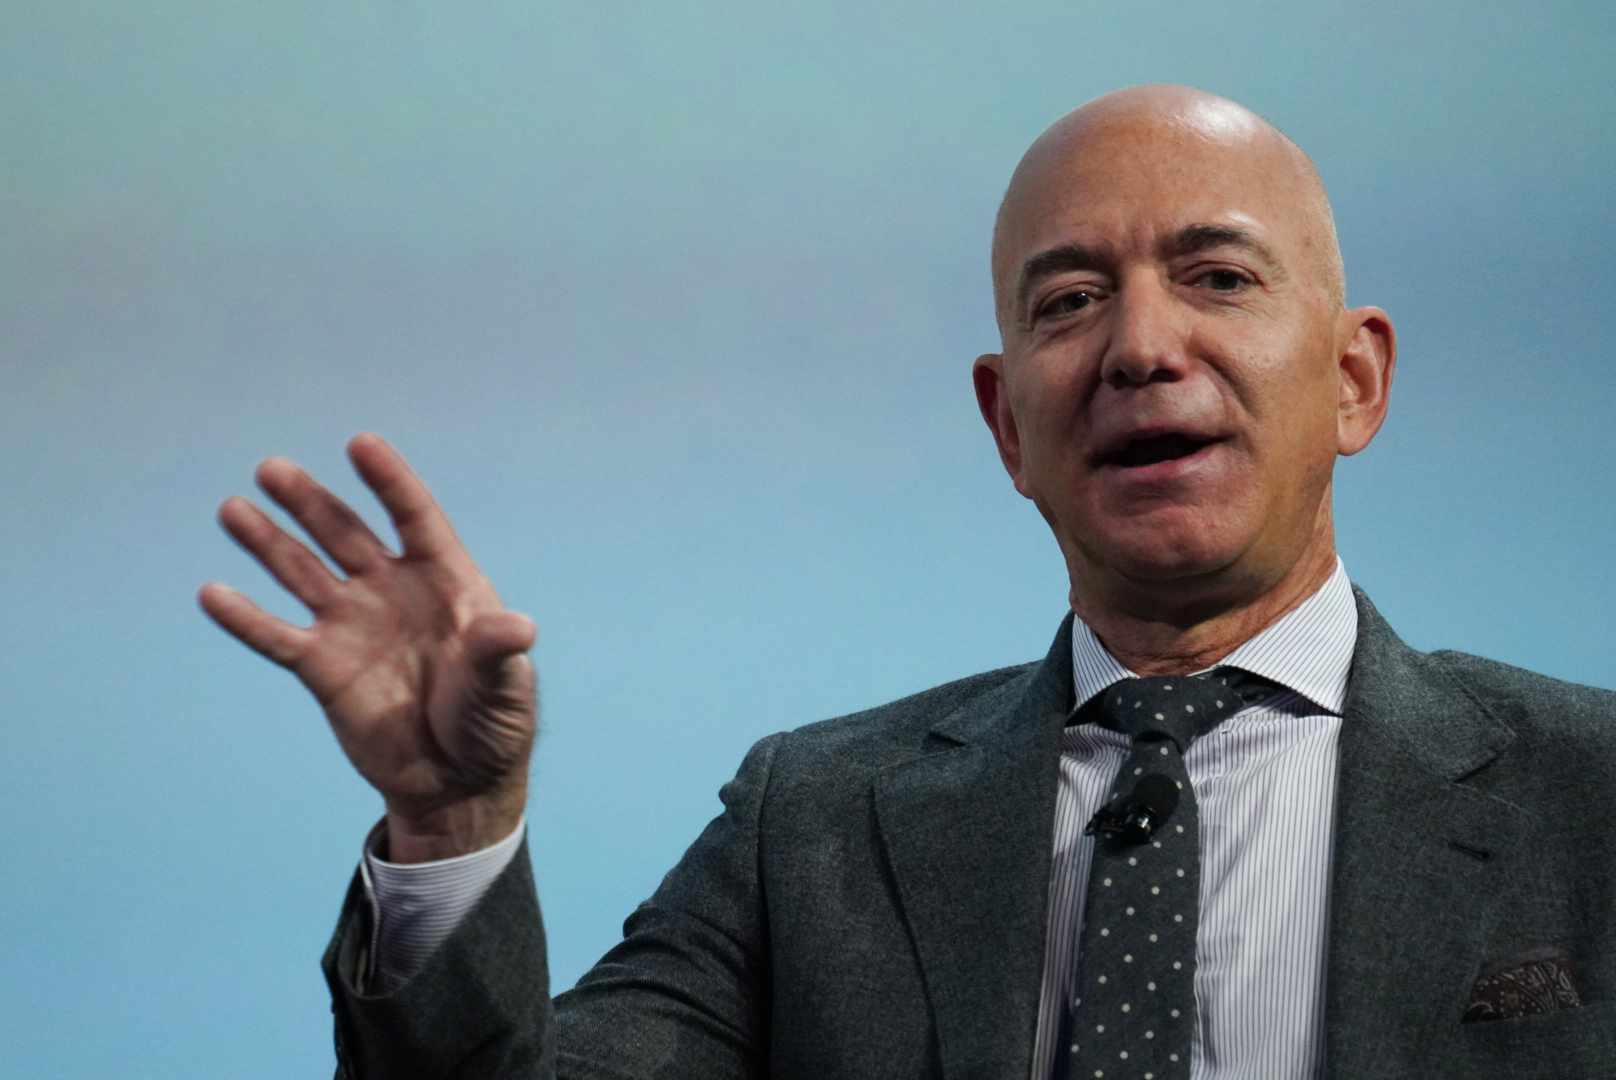 Jeff Bezos announced a $10 billion fund to fight climate change | TechCrunch